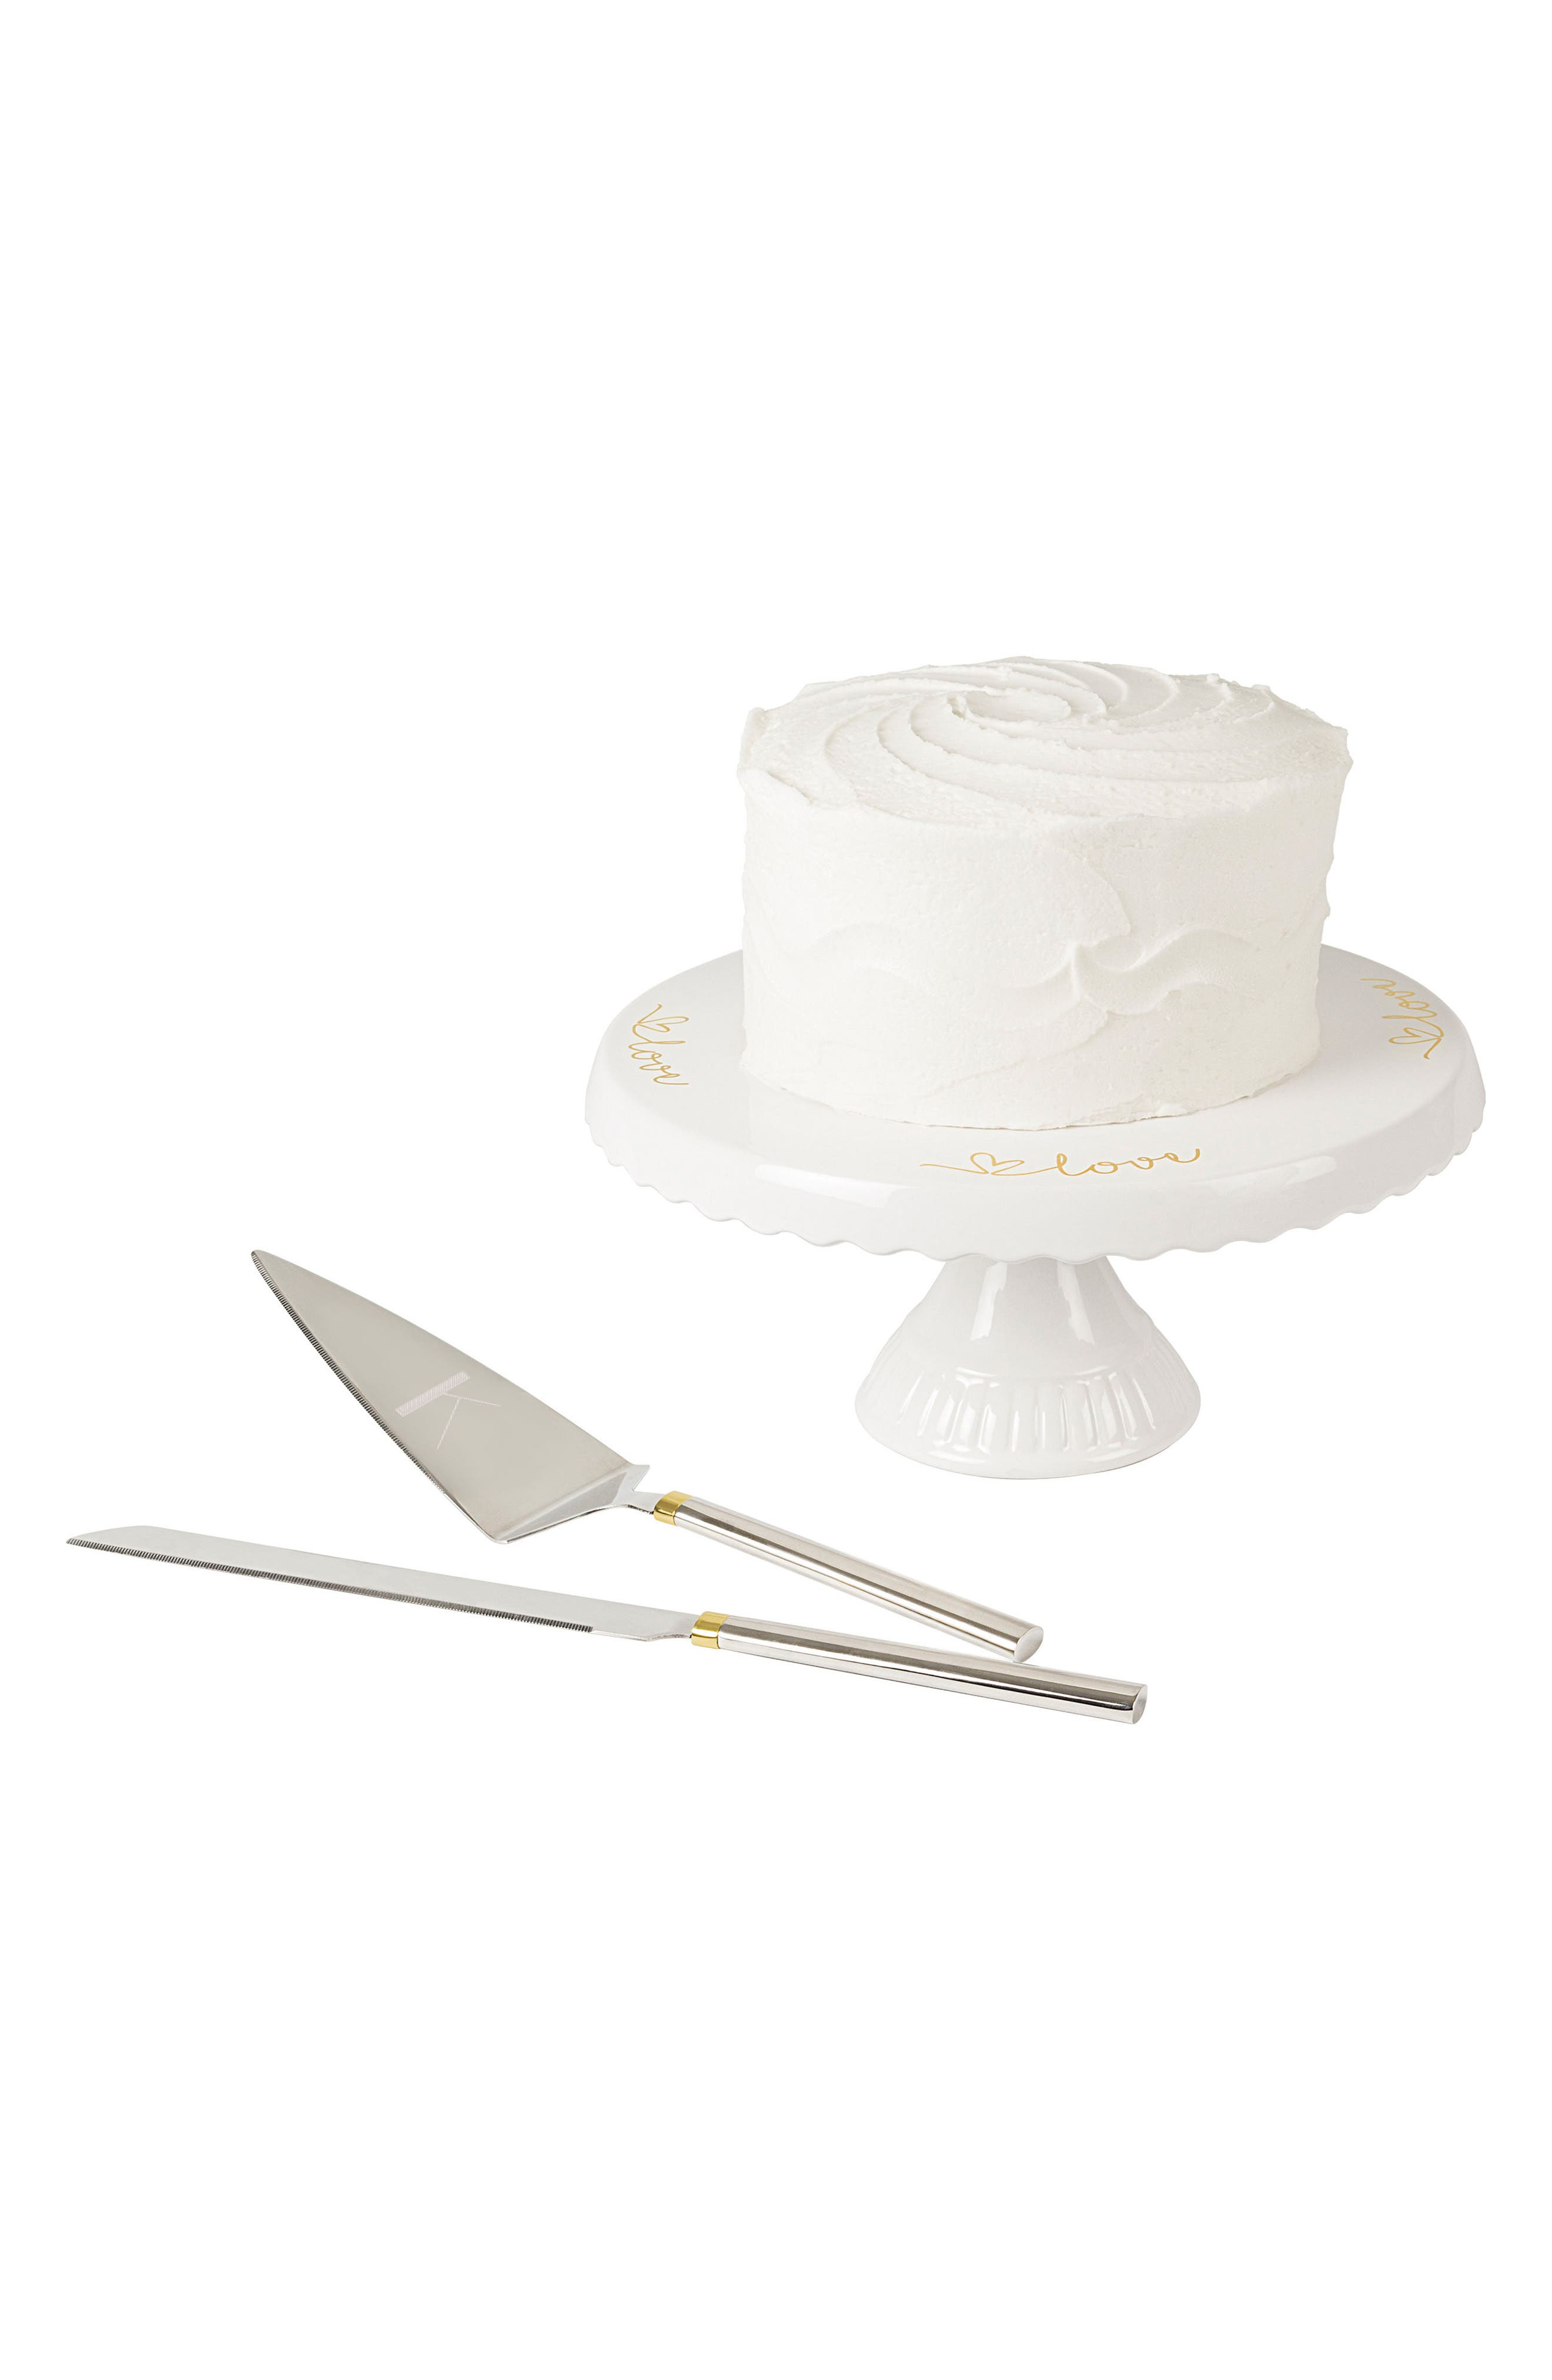 Love Monogram Cake Stand & Server Set,                             Main thumbnail 12, color,